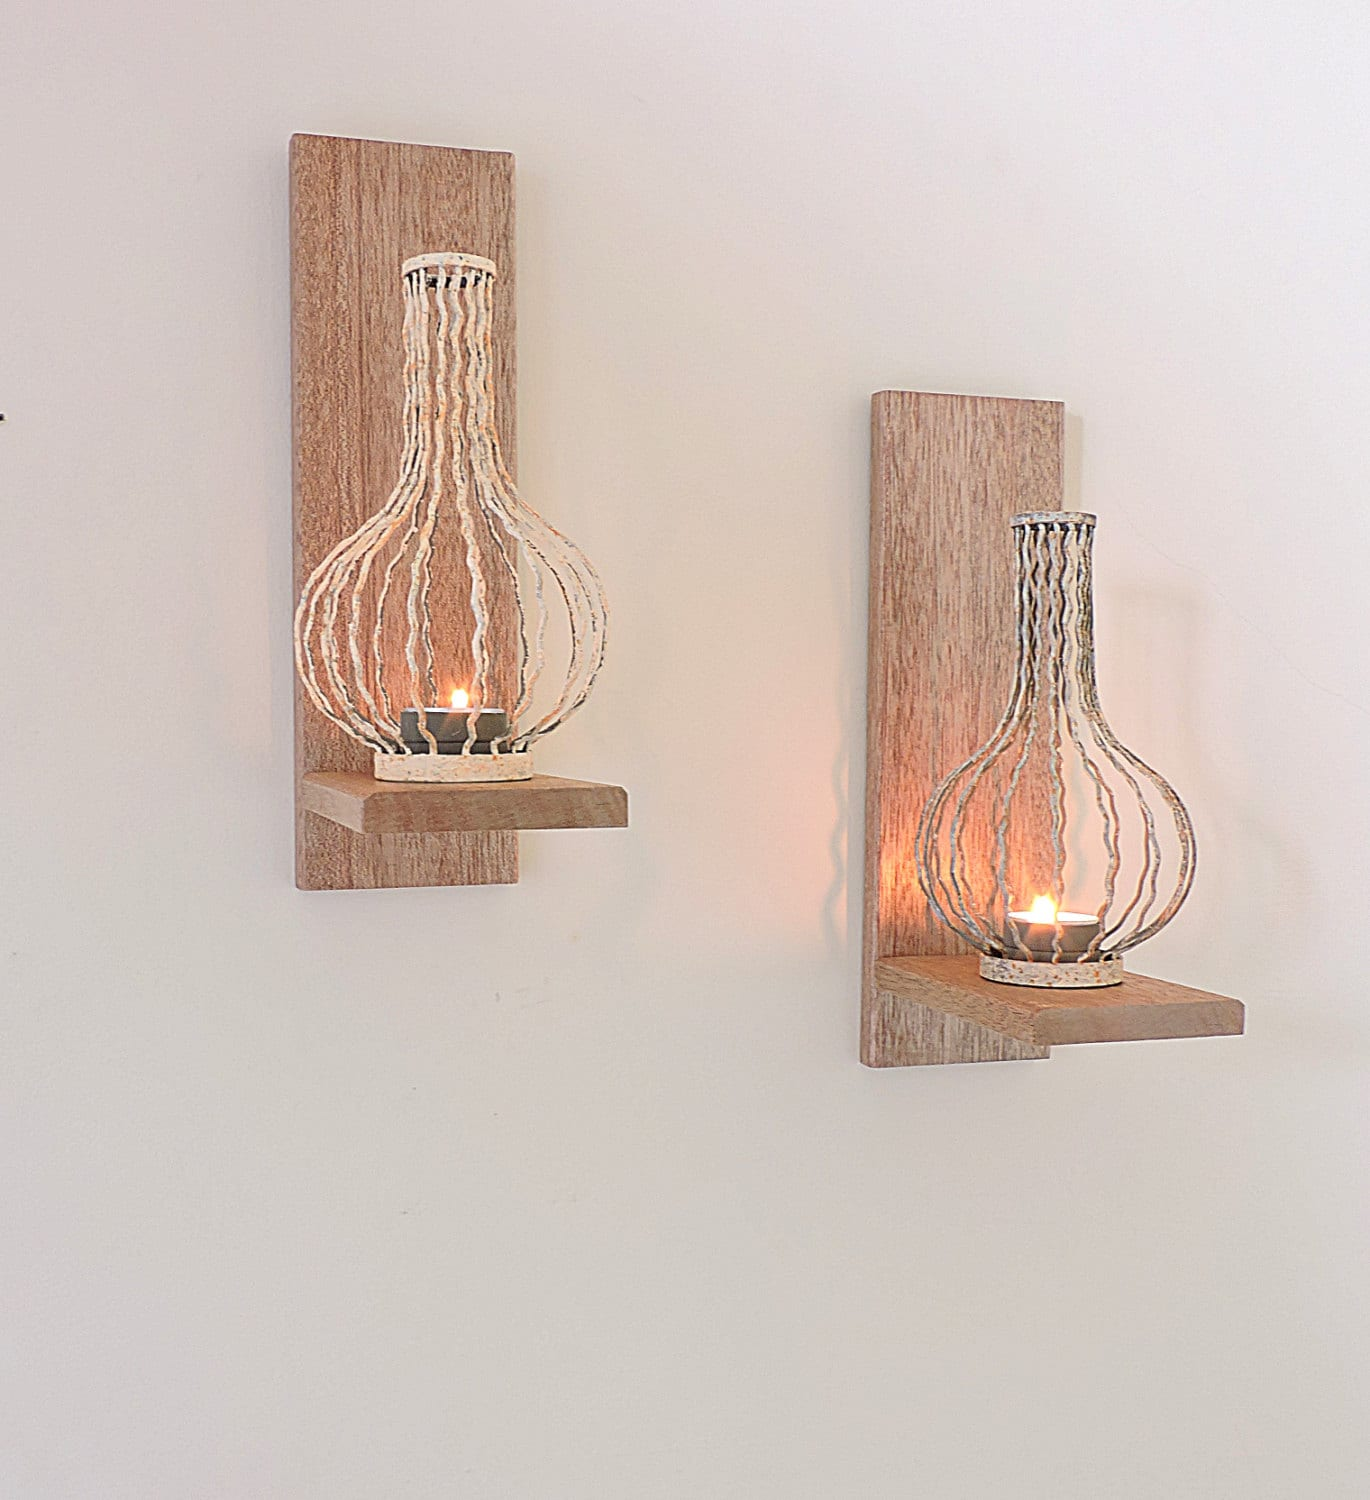 Wood And Glass Candle Wall Sconces : 2 Rustic Wooden Candle Sconcesmahogany or oak candle holder